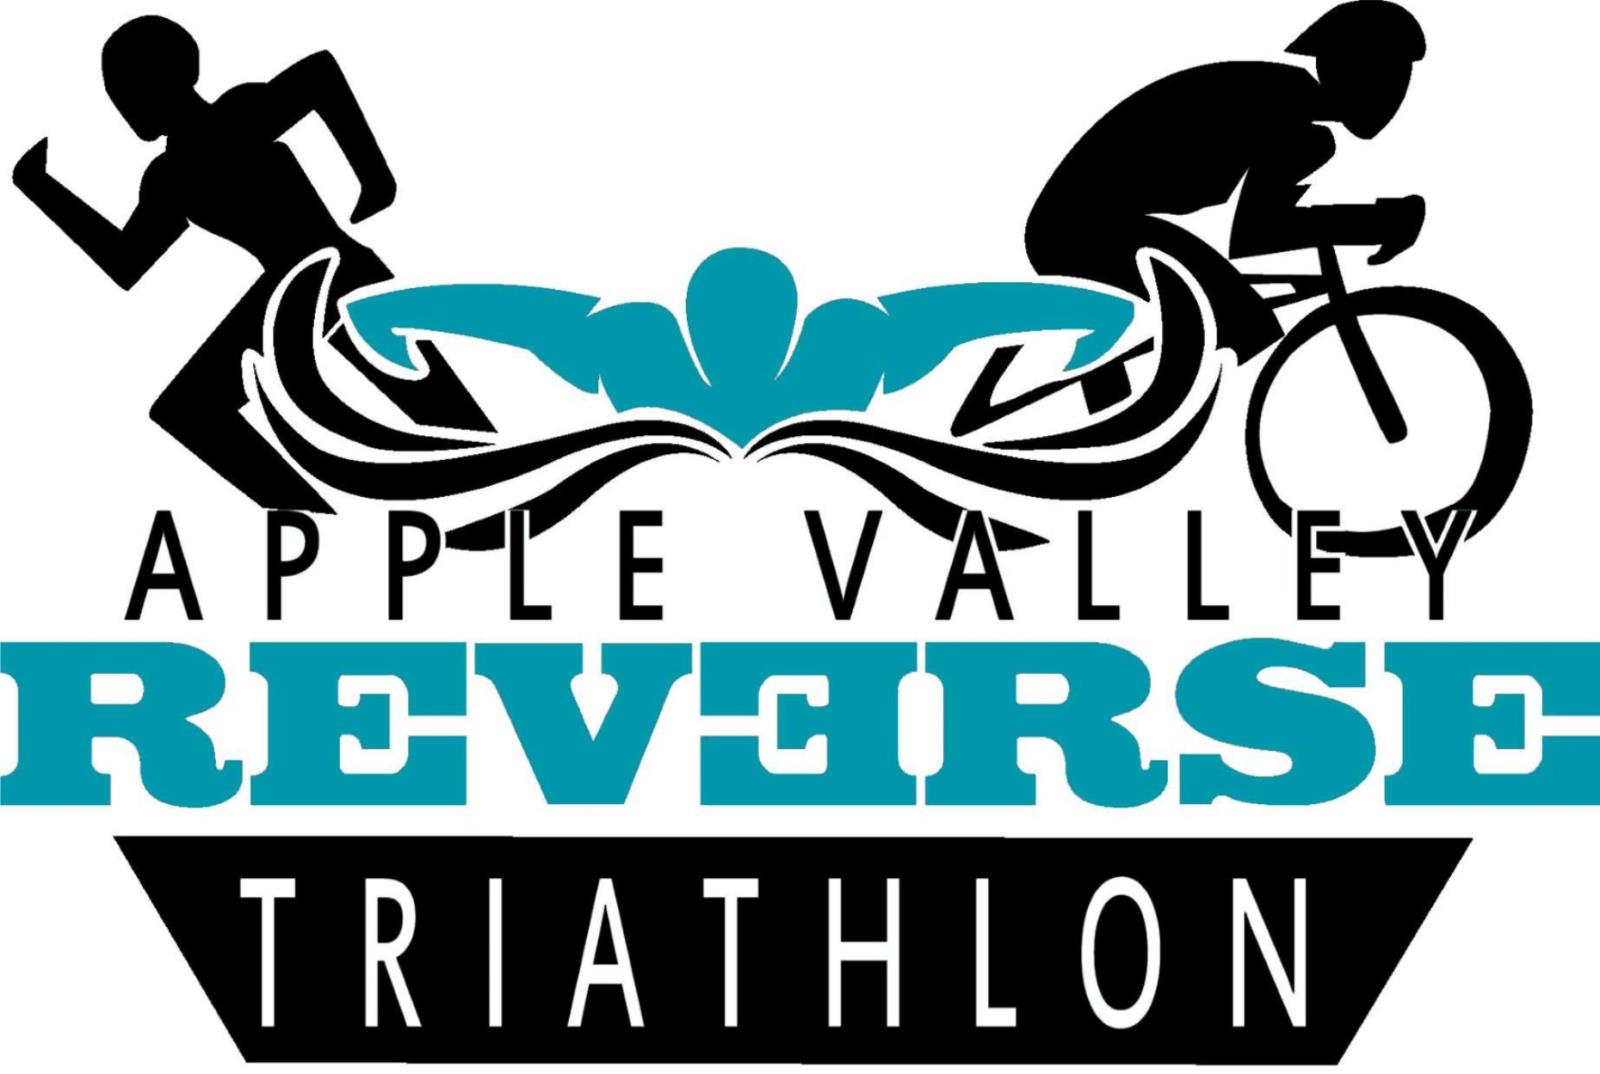 Streets to close this Saturday for Apple Valley Reverse Triathlon